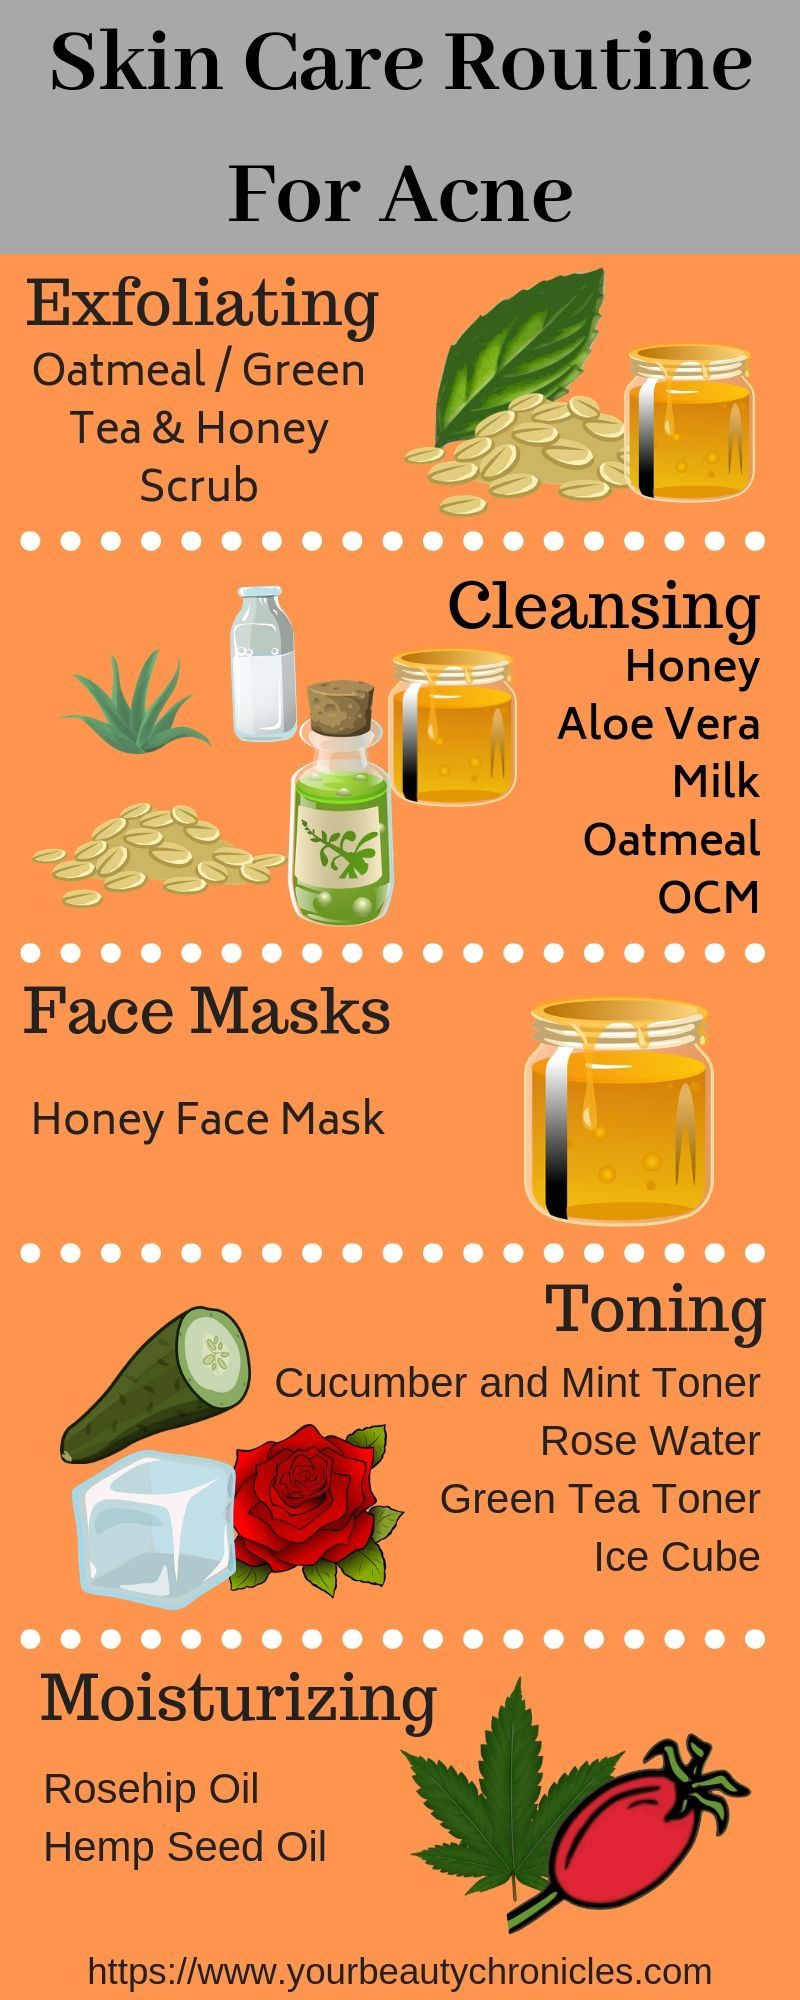 Get Rid Of Your Acne With This All Natural Skin Care Routine For Acne Harness The Power Of Nature In Natural Skin Care Routine All Natural Skin Care Skin Care